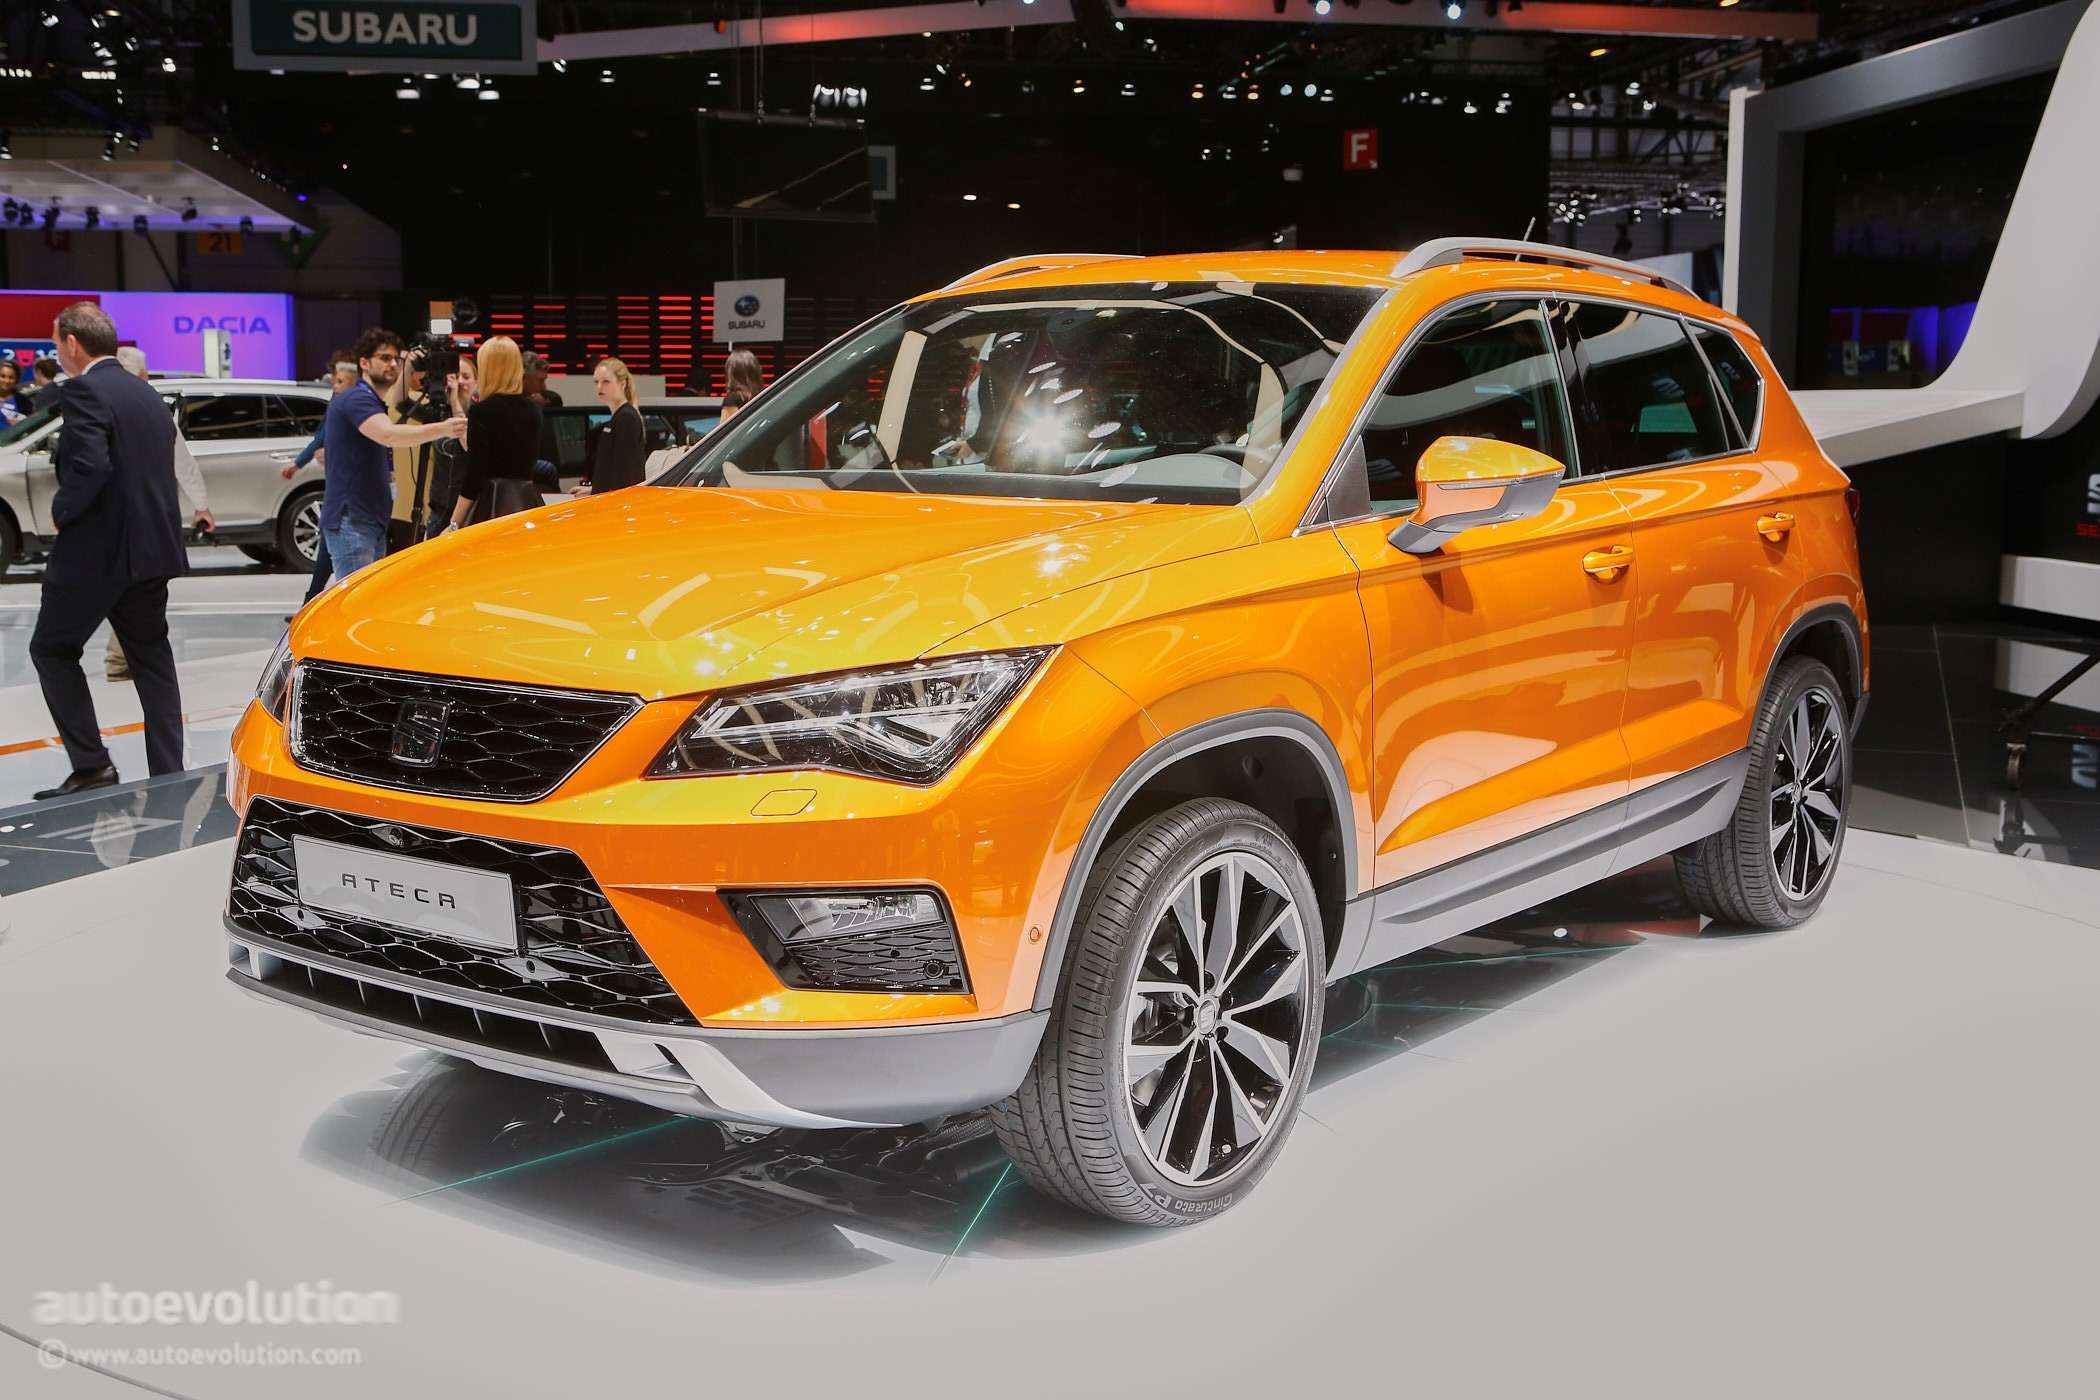 2016 seat ateca suv makes official debut at geneva. Black Bedroom Furniture Sets. Home Design Ideas